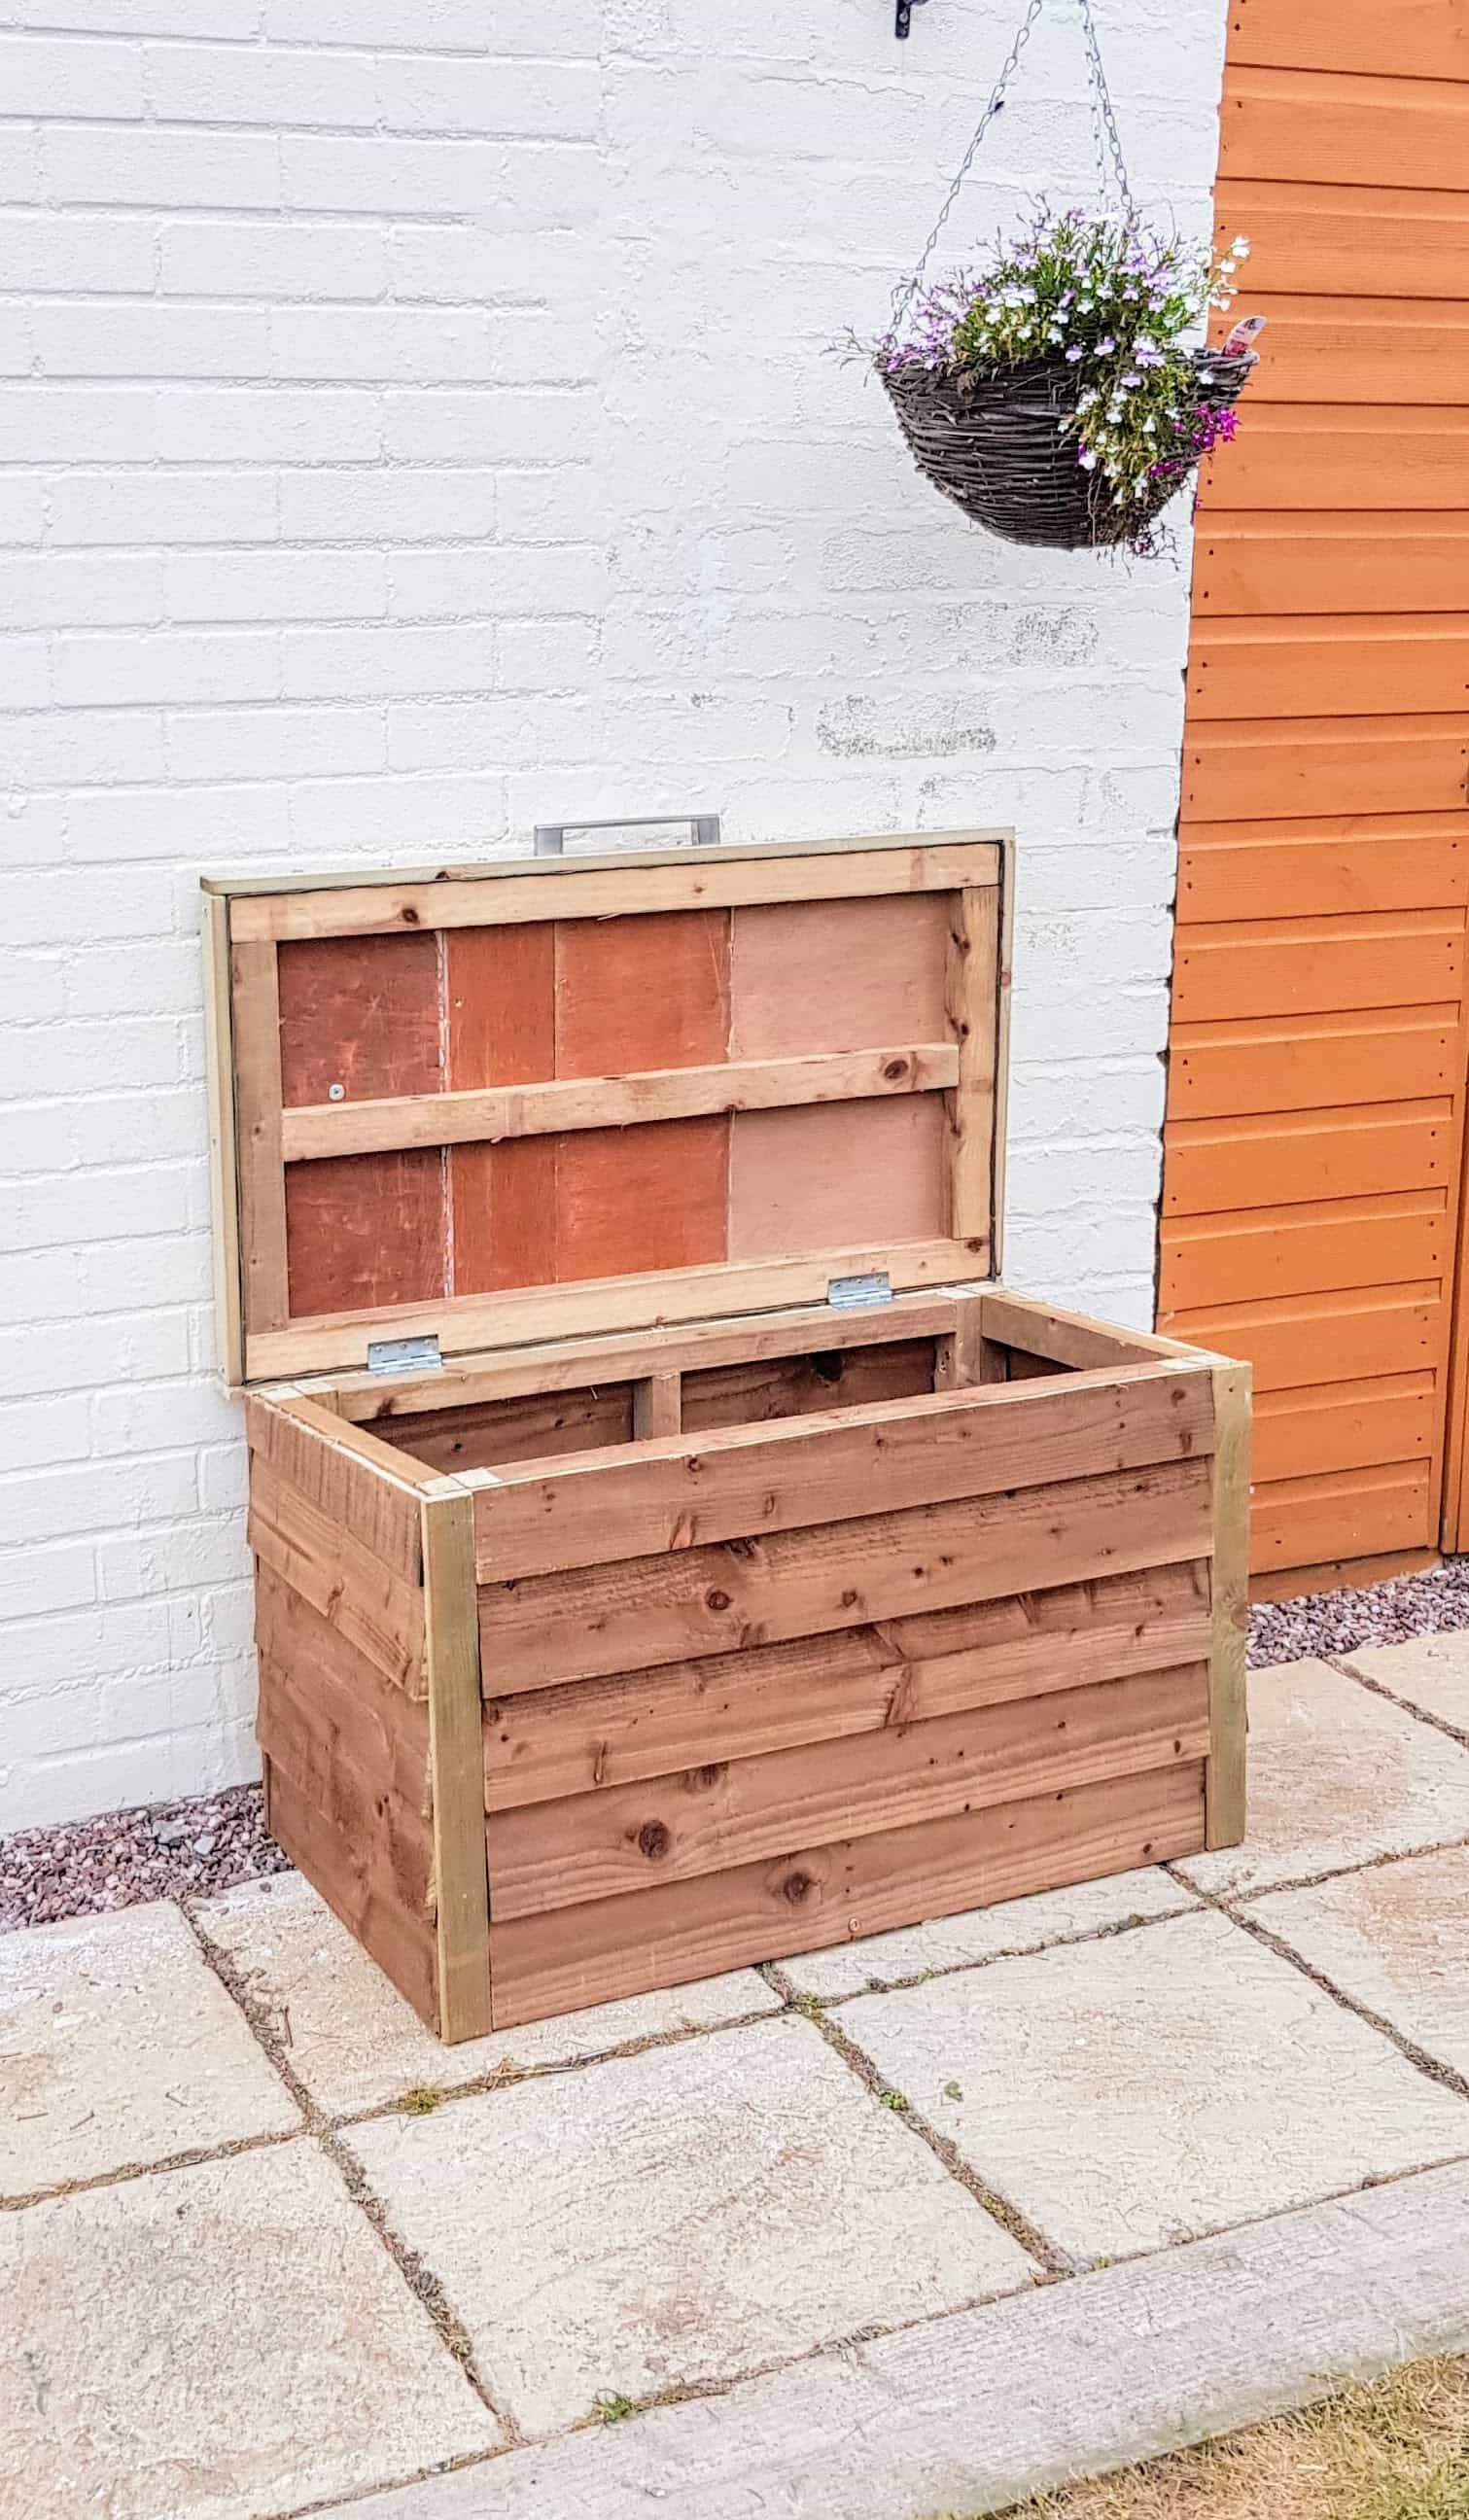 How To Build A Featheredge Garden Storage Chest Box The